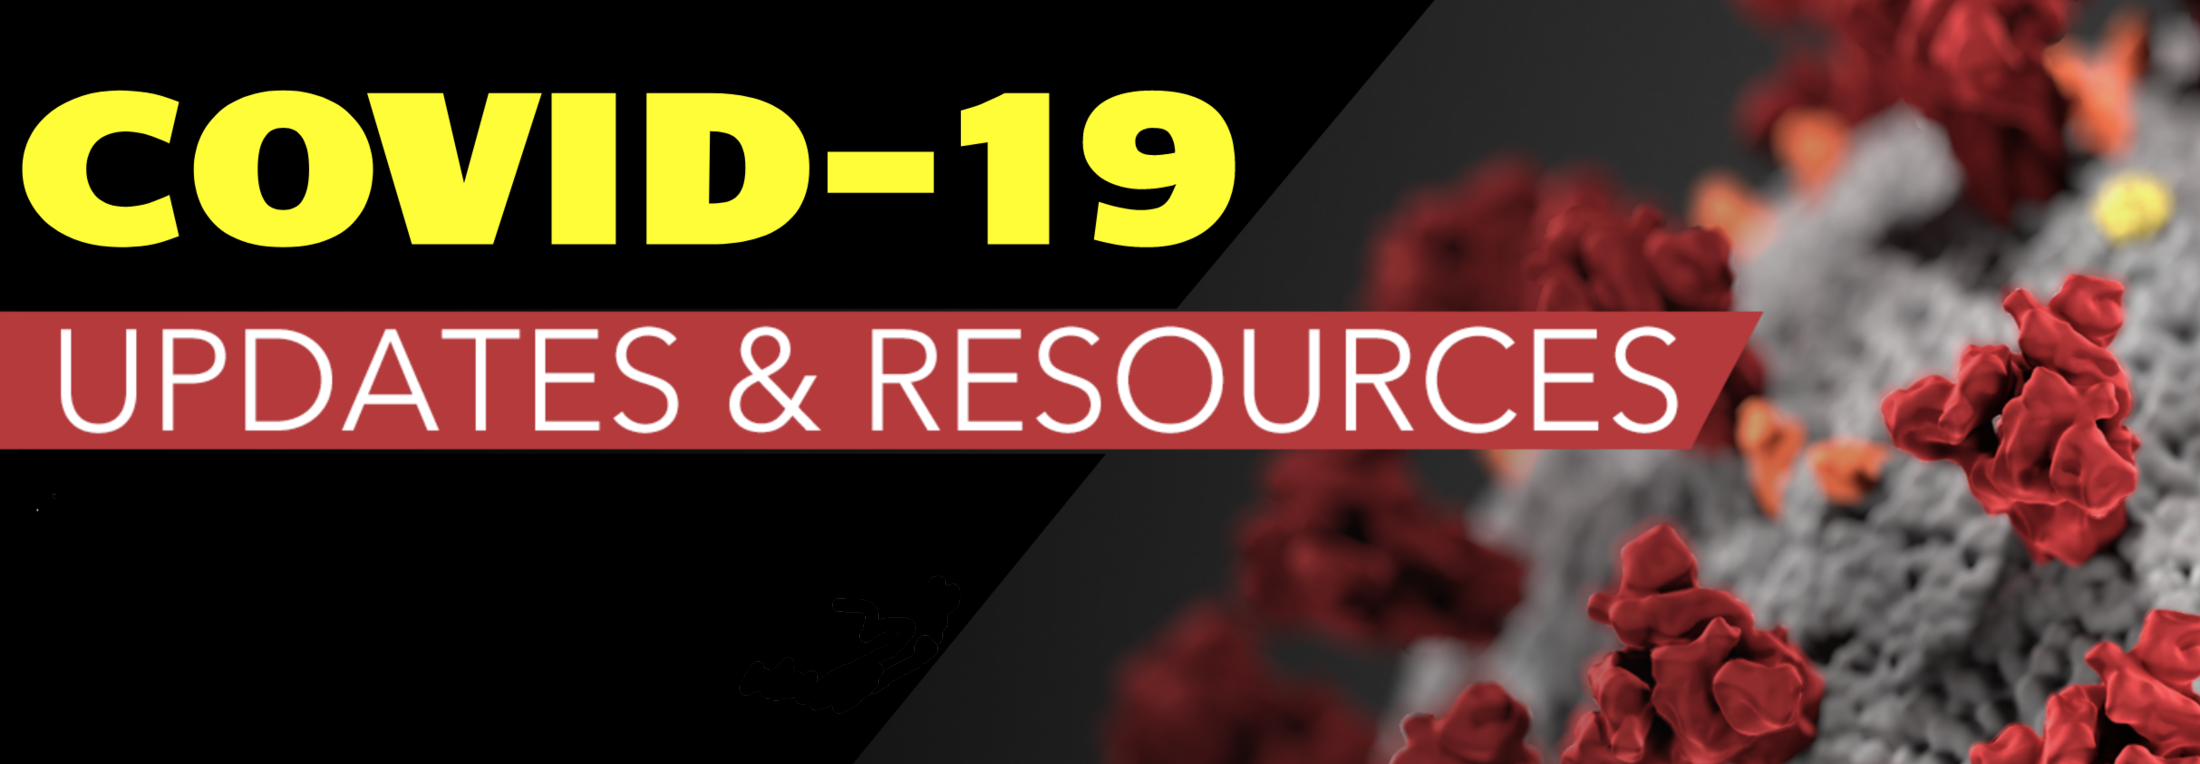 Covid 19 updates and resources logo